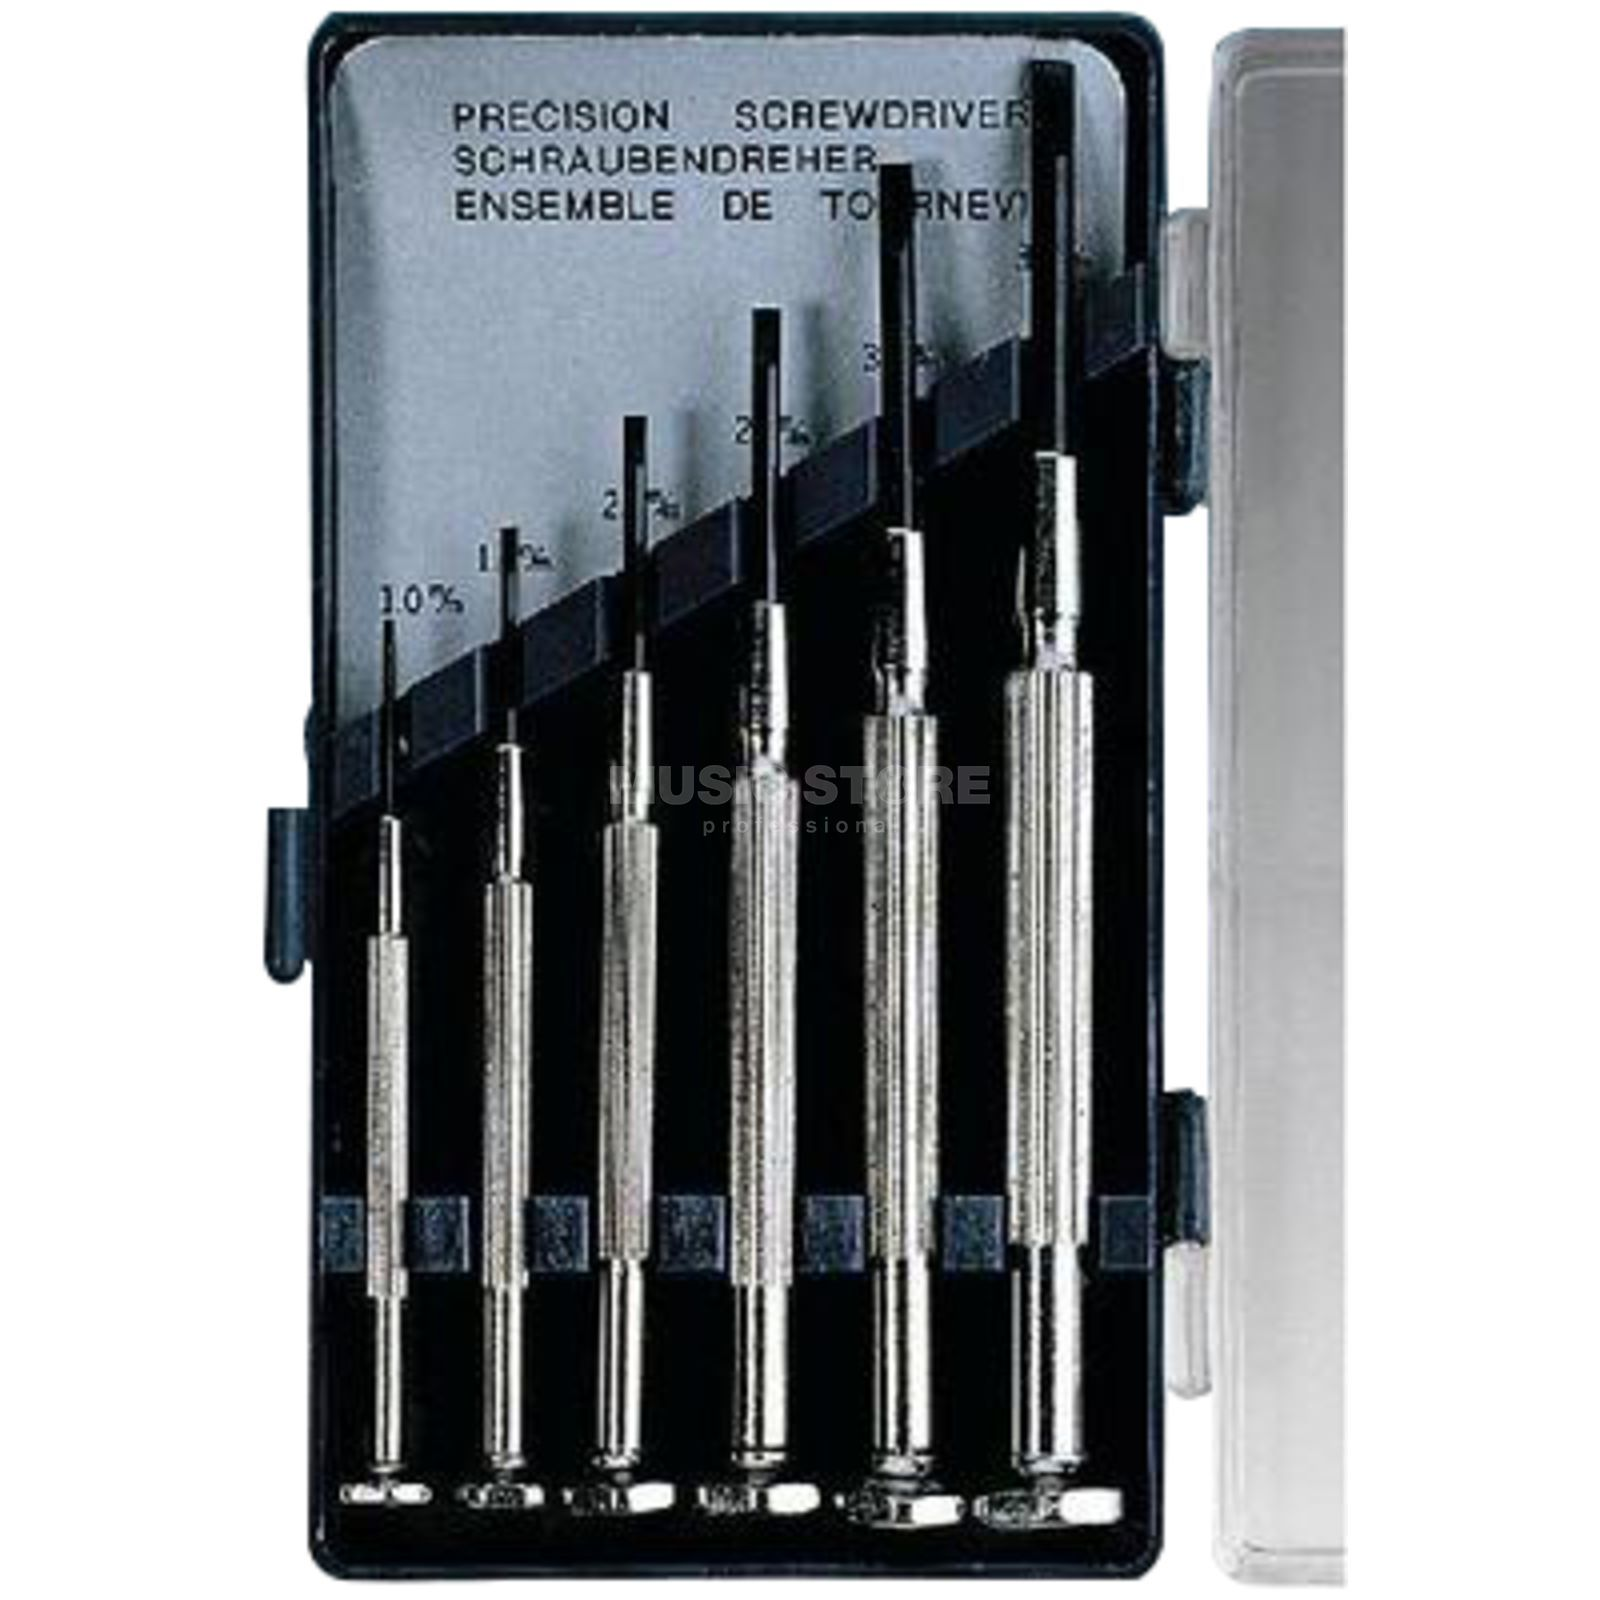 Arnold & Sons 6-Piece Srew Driver Set Product Image